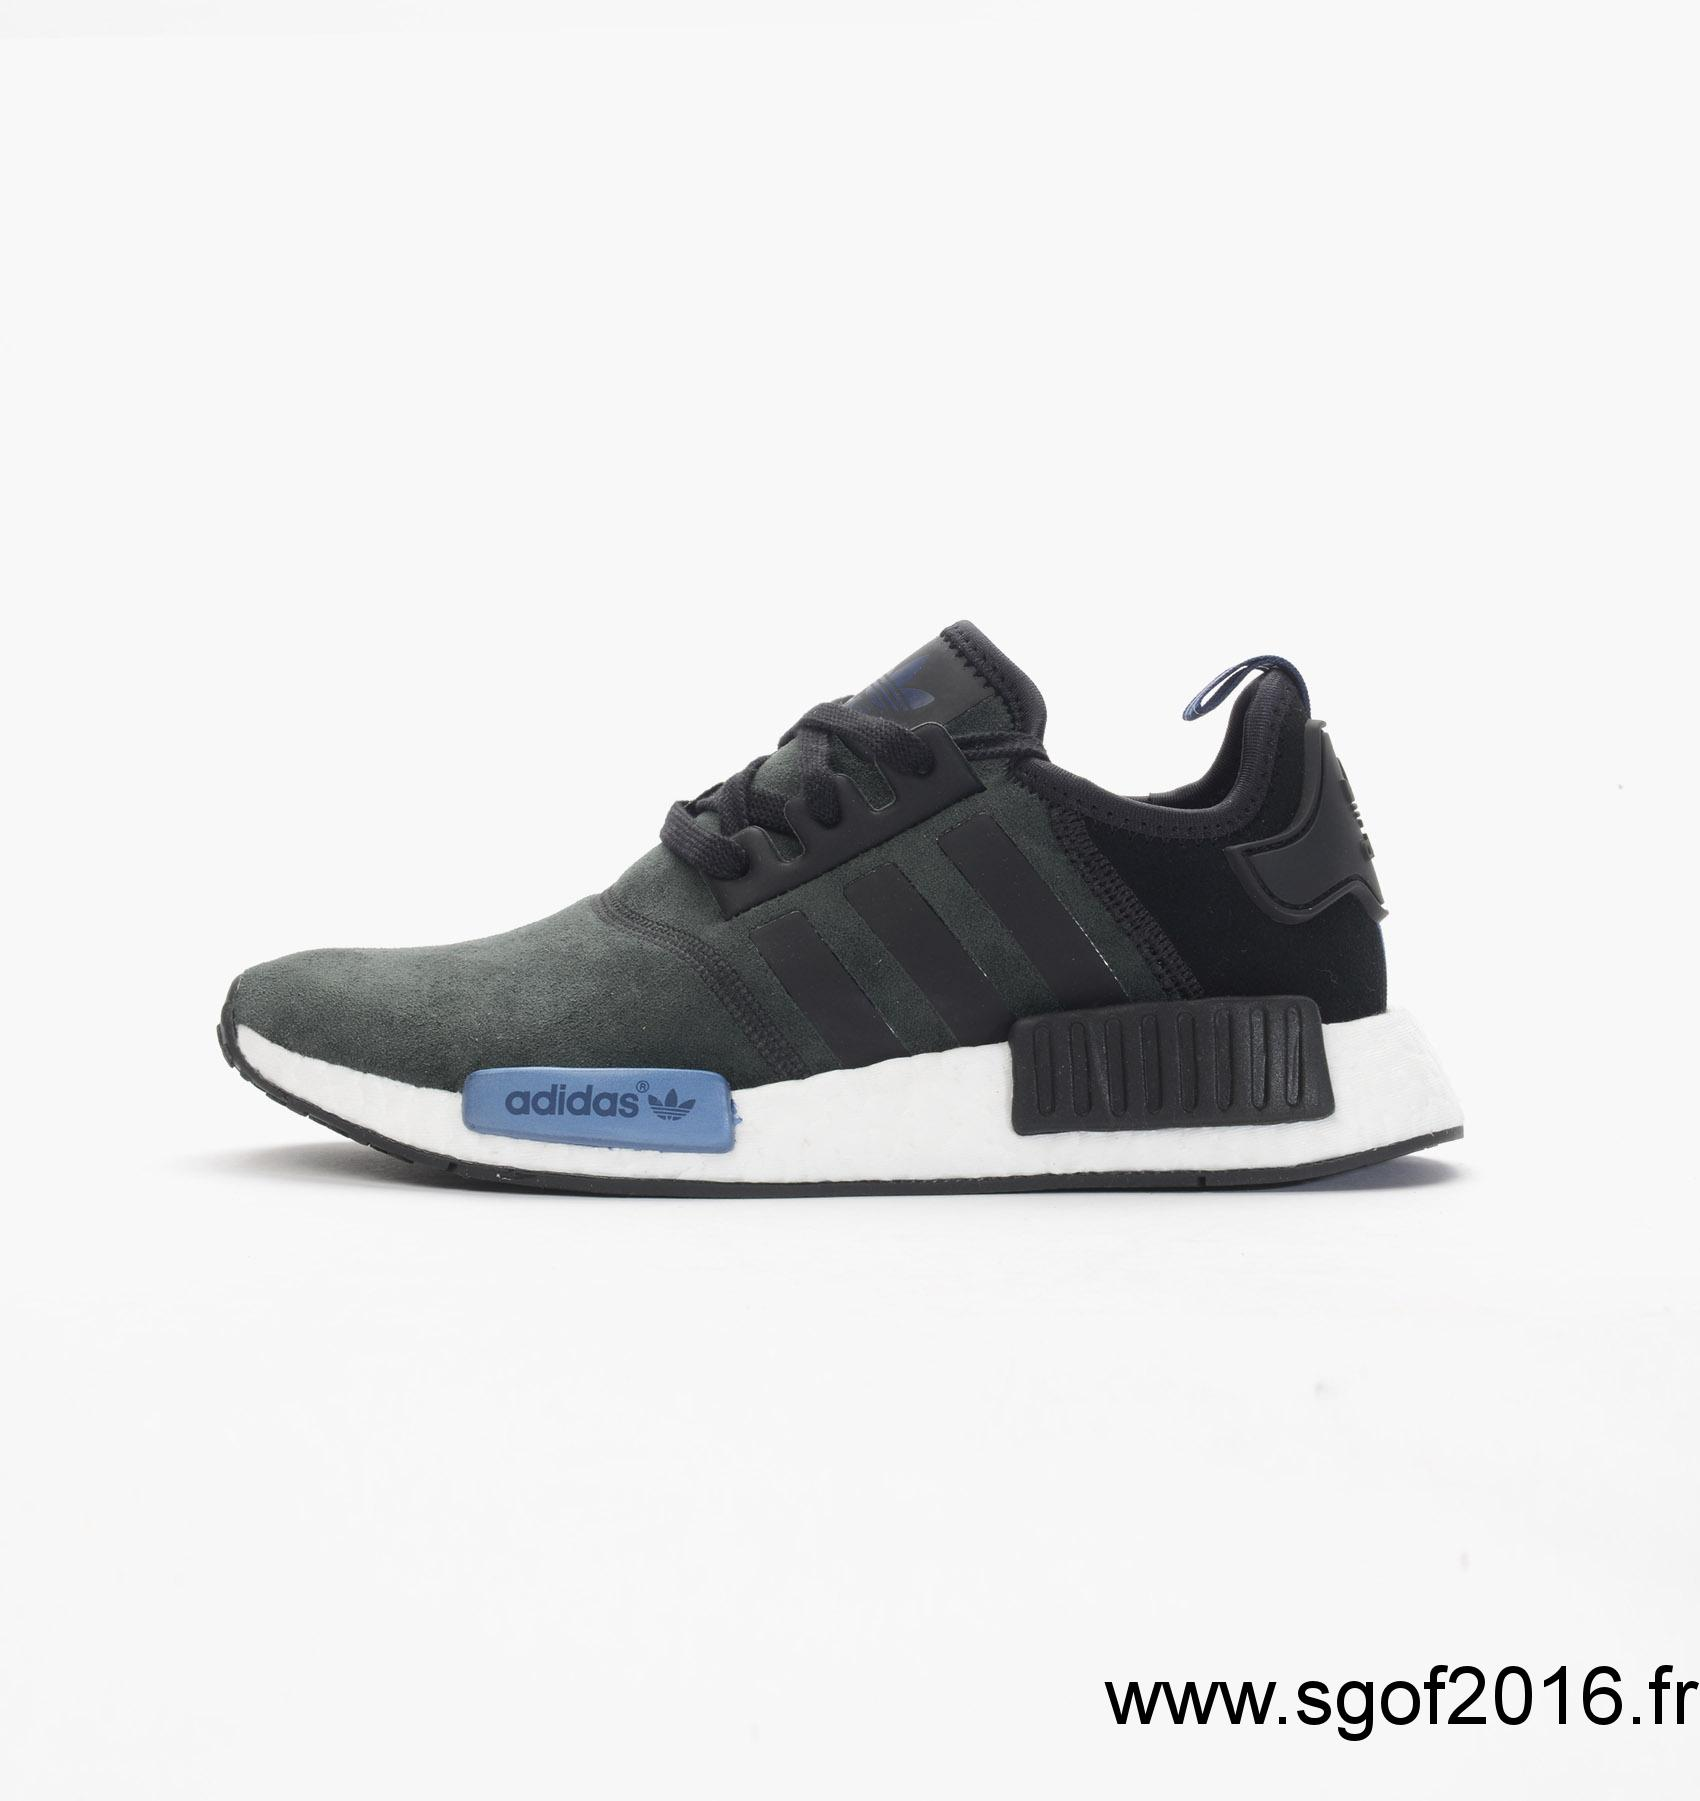 Acheter adidas nmd taille 38 pas cher